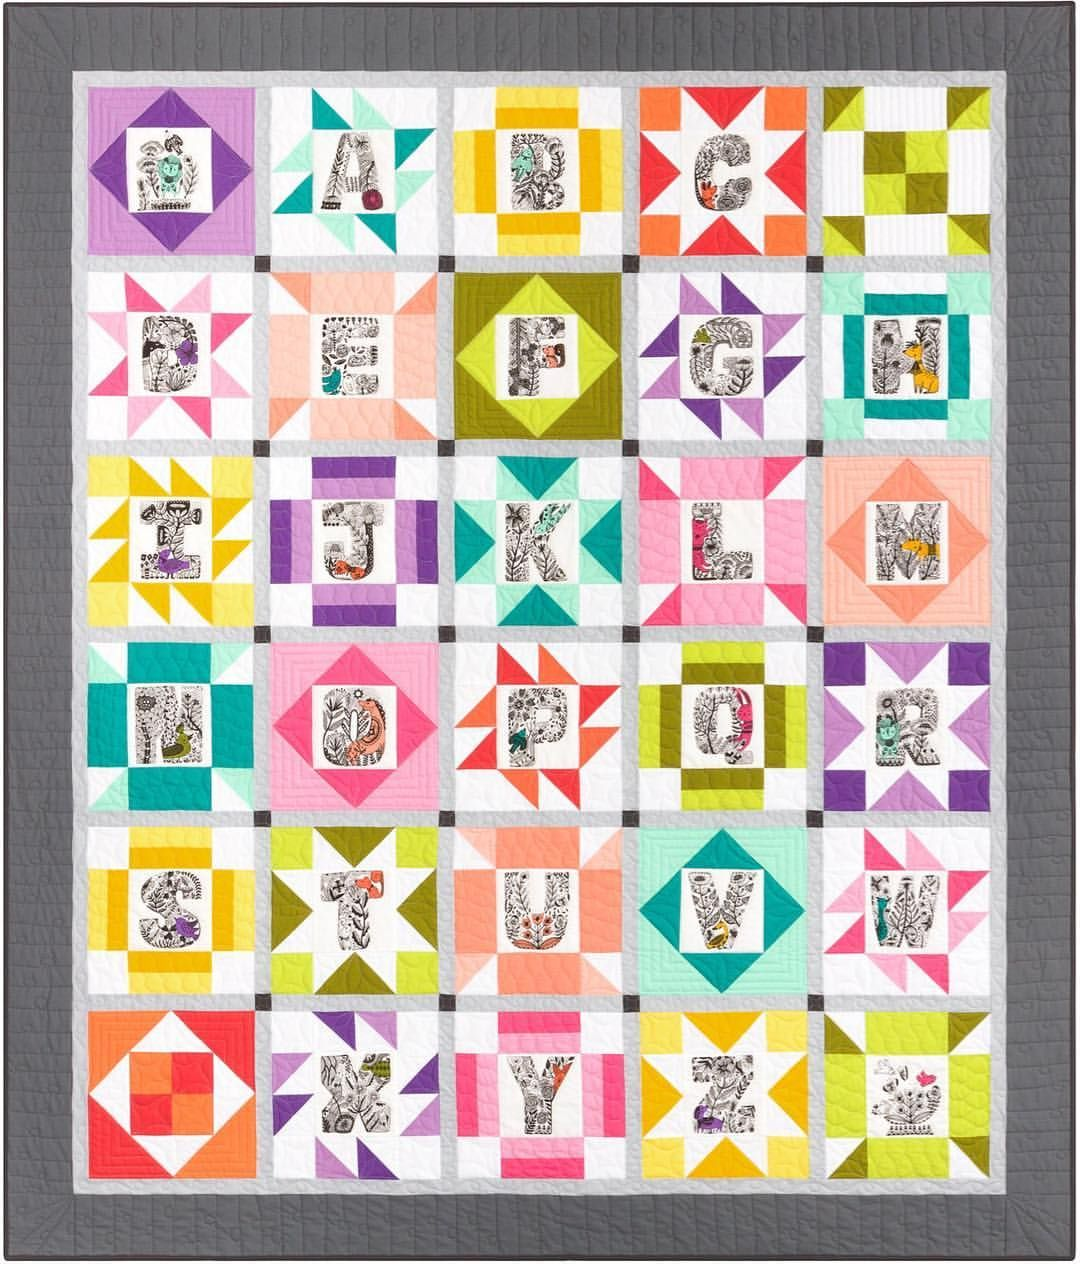 476 likes 41 comments elisabeth woo hardy elisabew on learn your letters pattern coming soon march 2018 spiritdancerdesigns